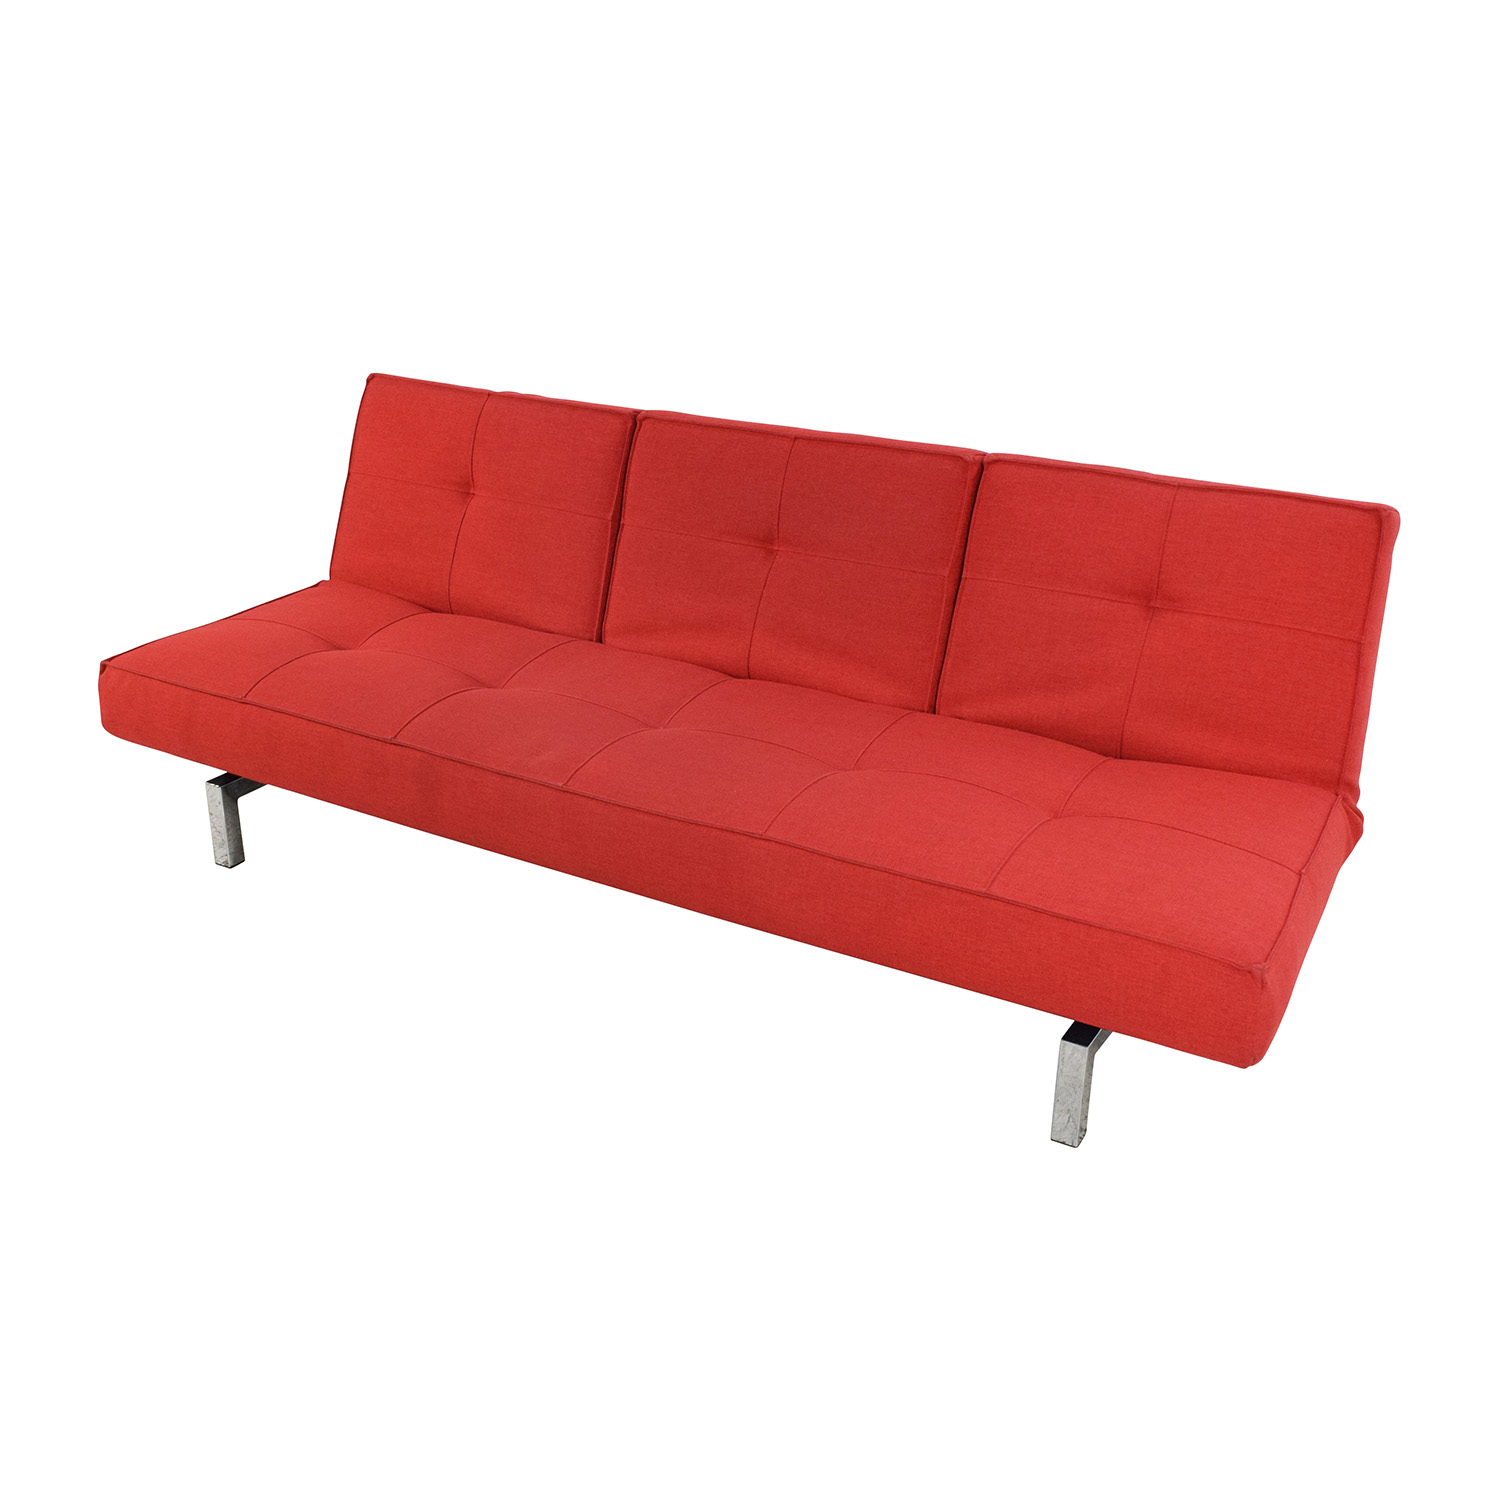 ■sofa bed Heroism Room And Board Sofa Bed Simple Room And